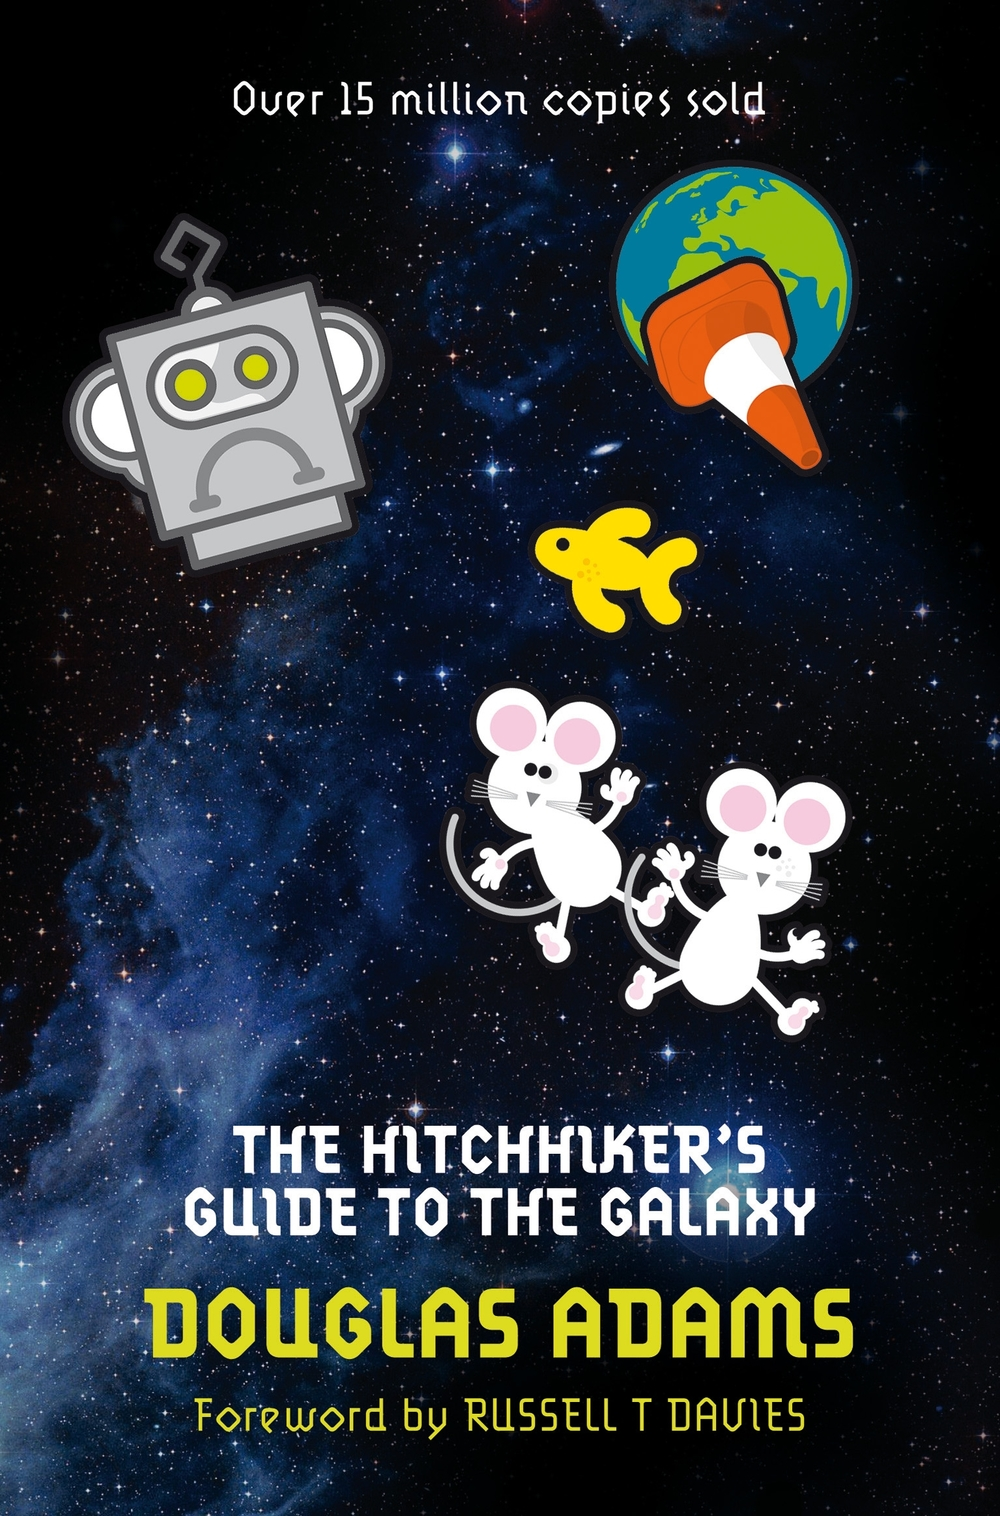 Hitchhikers cover - book 1